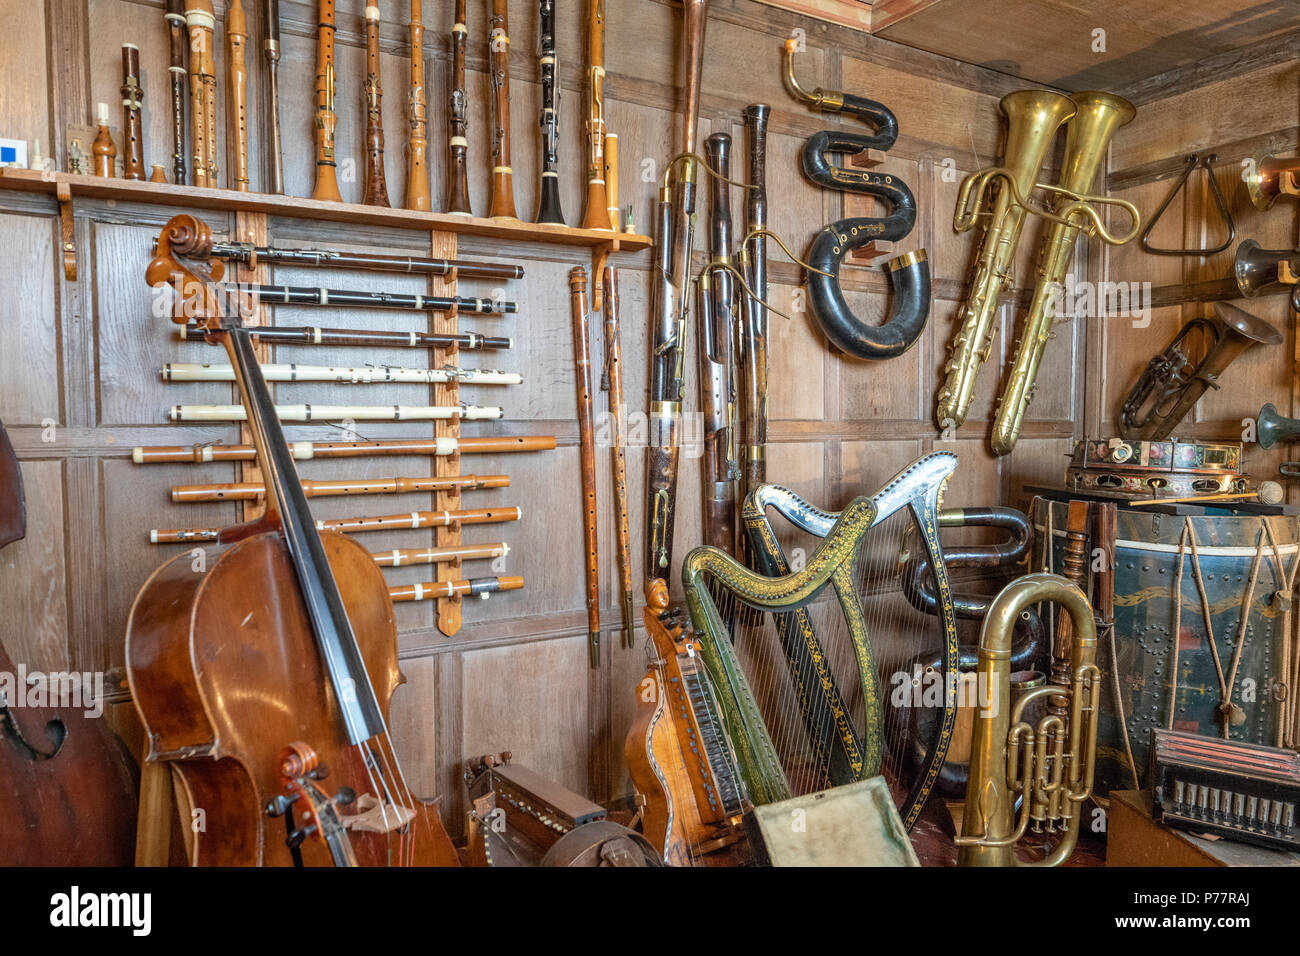 Old musical instruments on display at Snowshill Manor in the Cotswold village of Snowshill, Gloucestershire UK - Stock Image